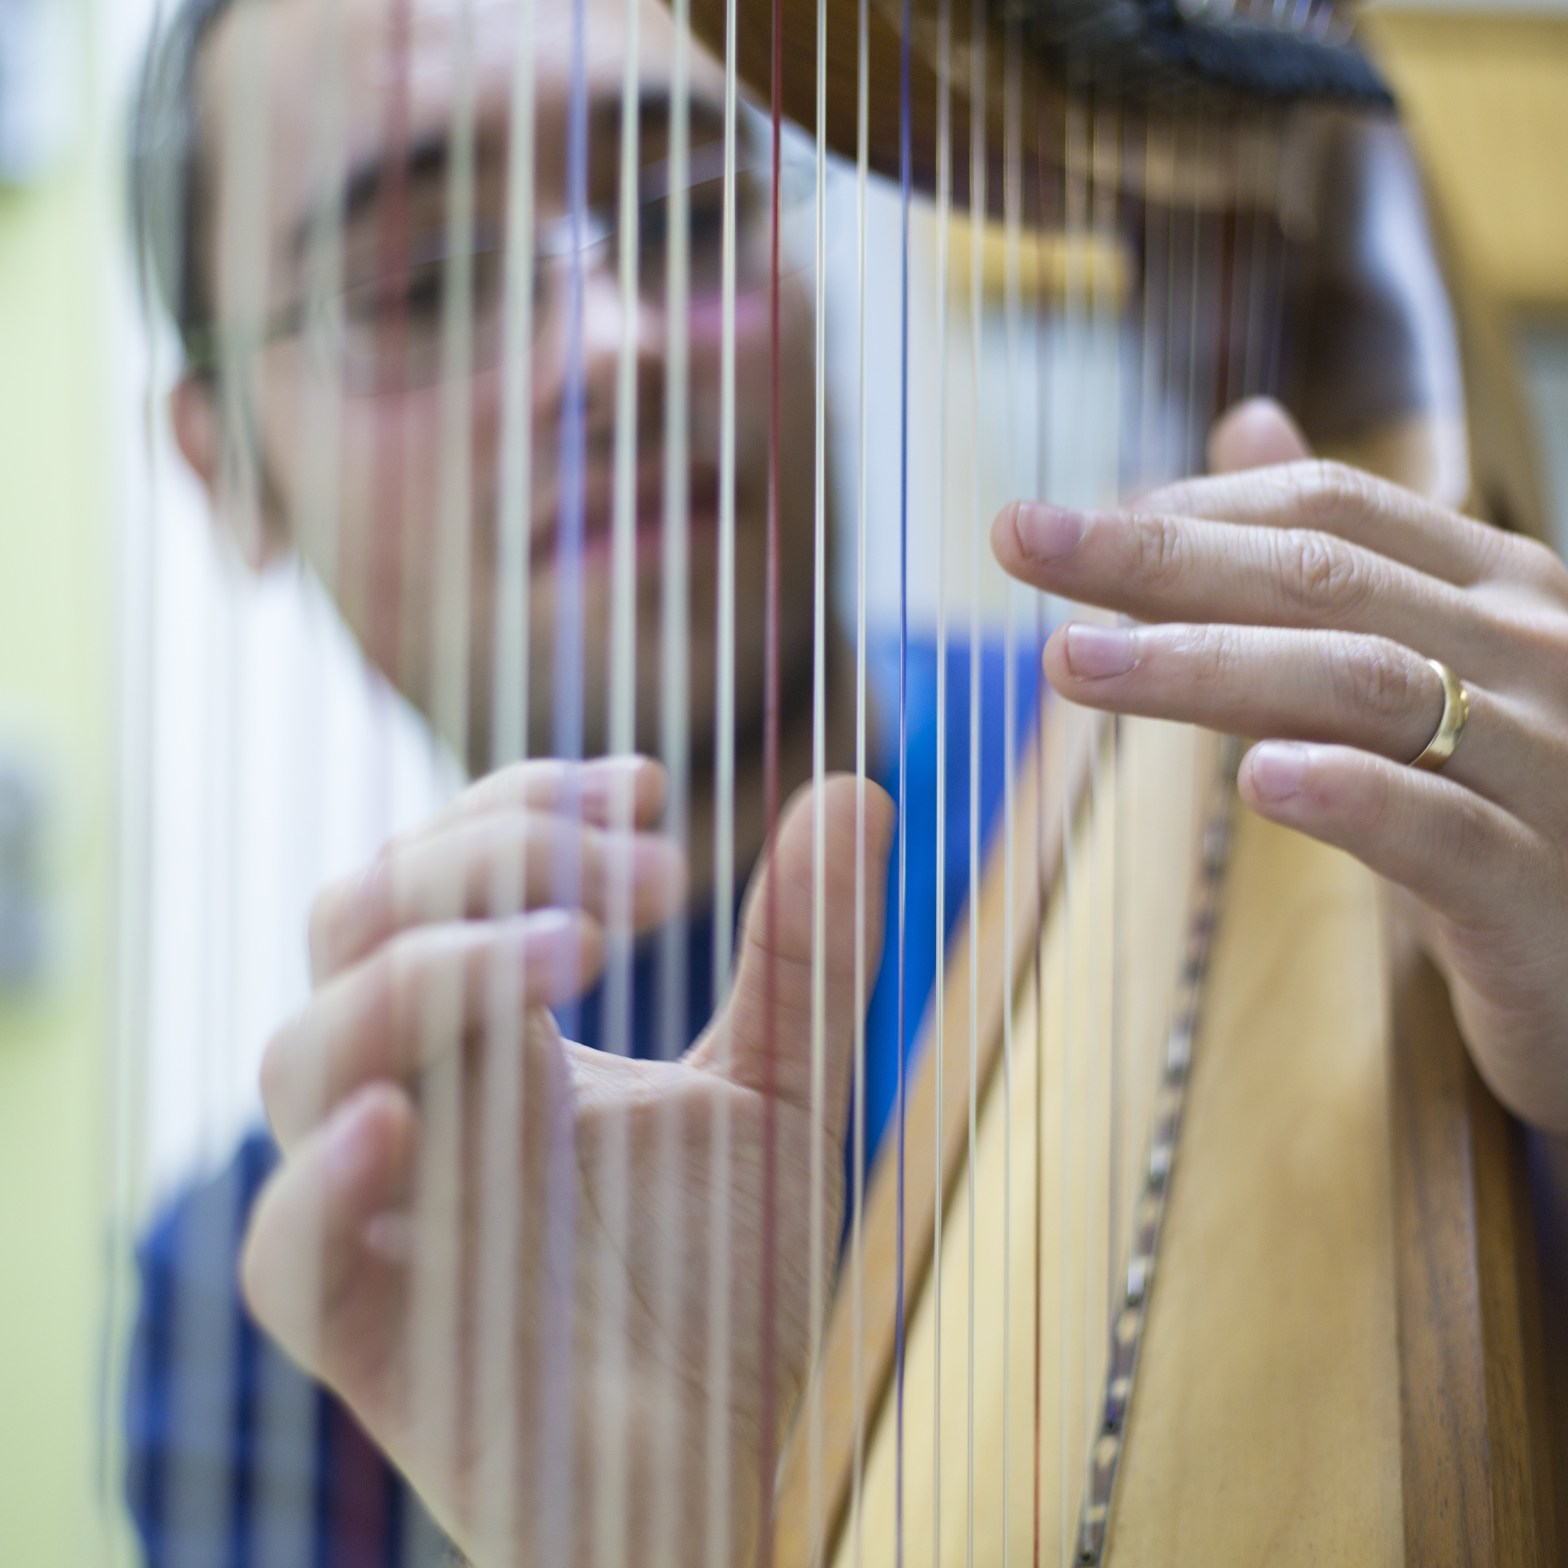 Mark playing the harp